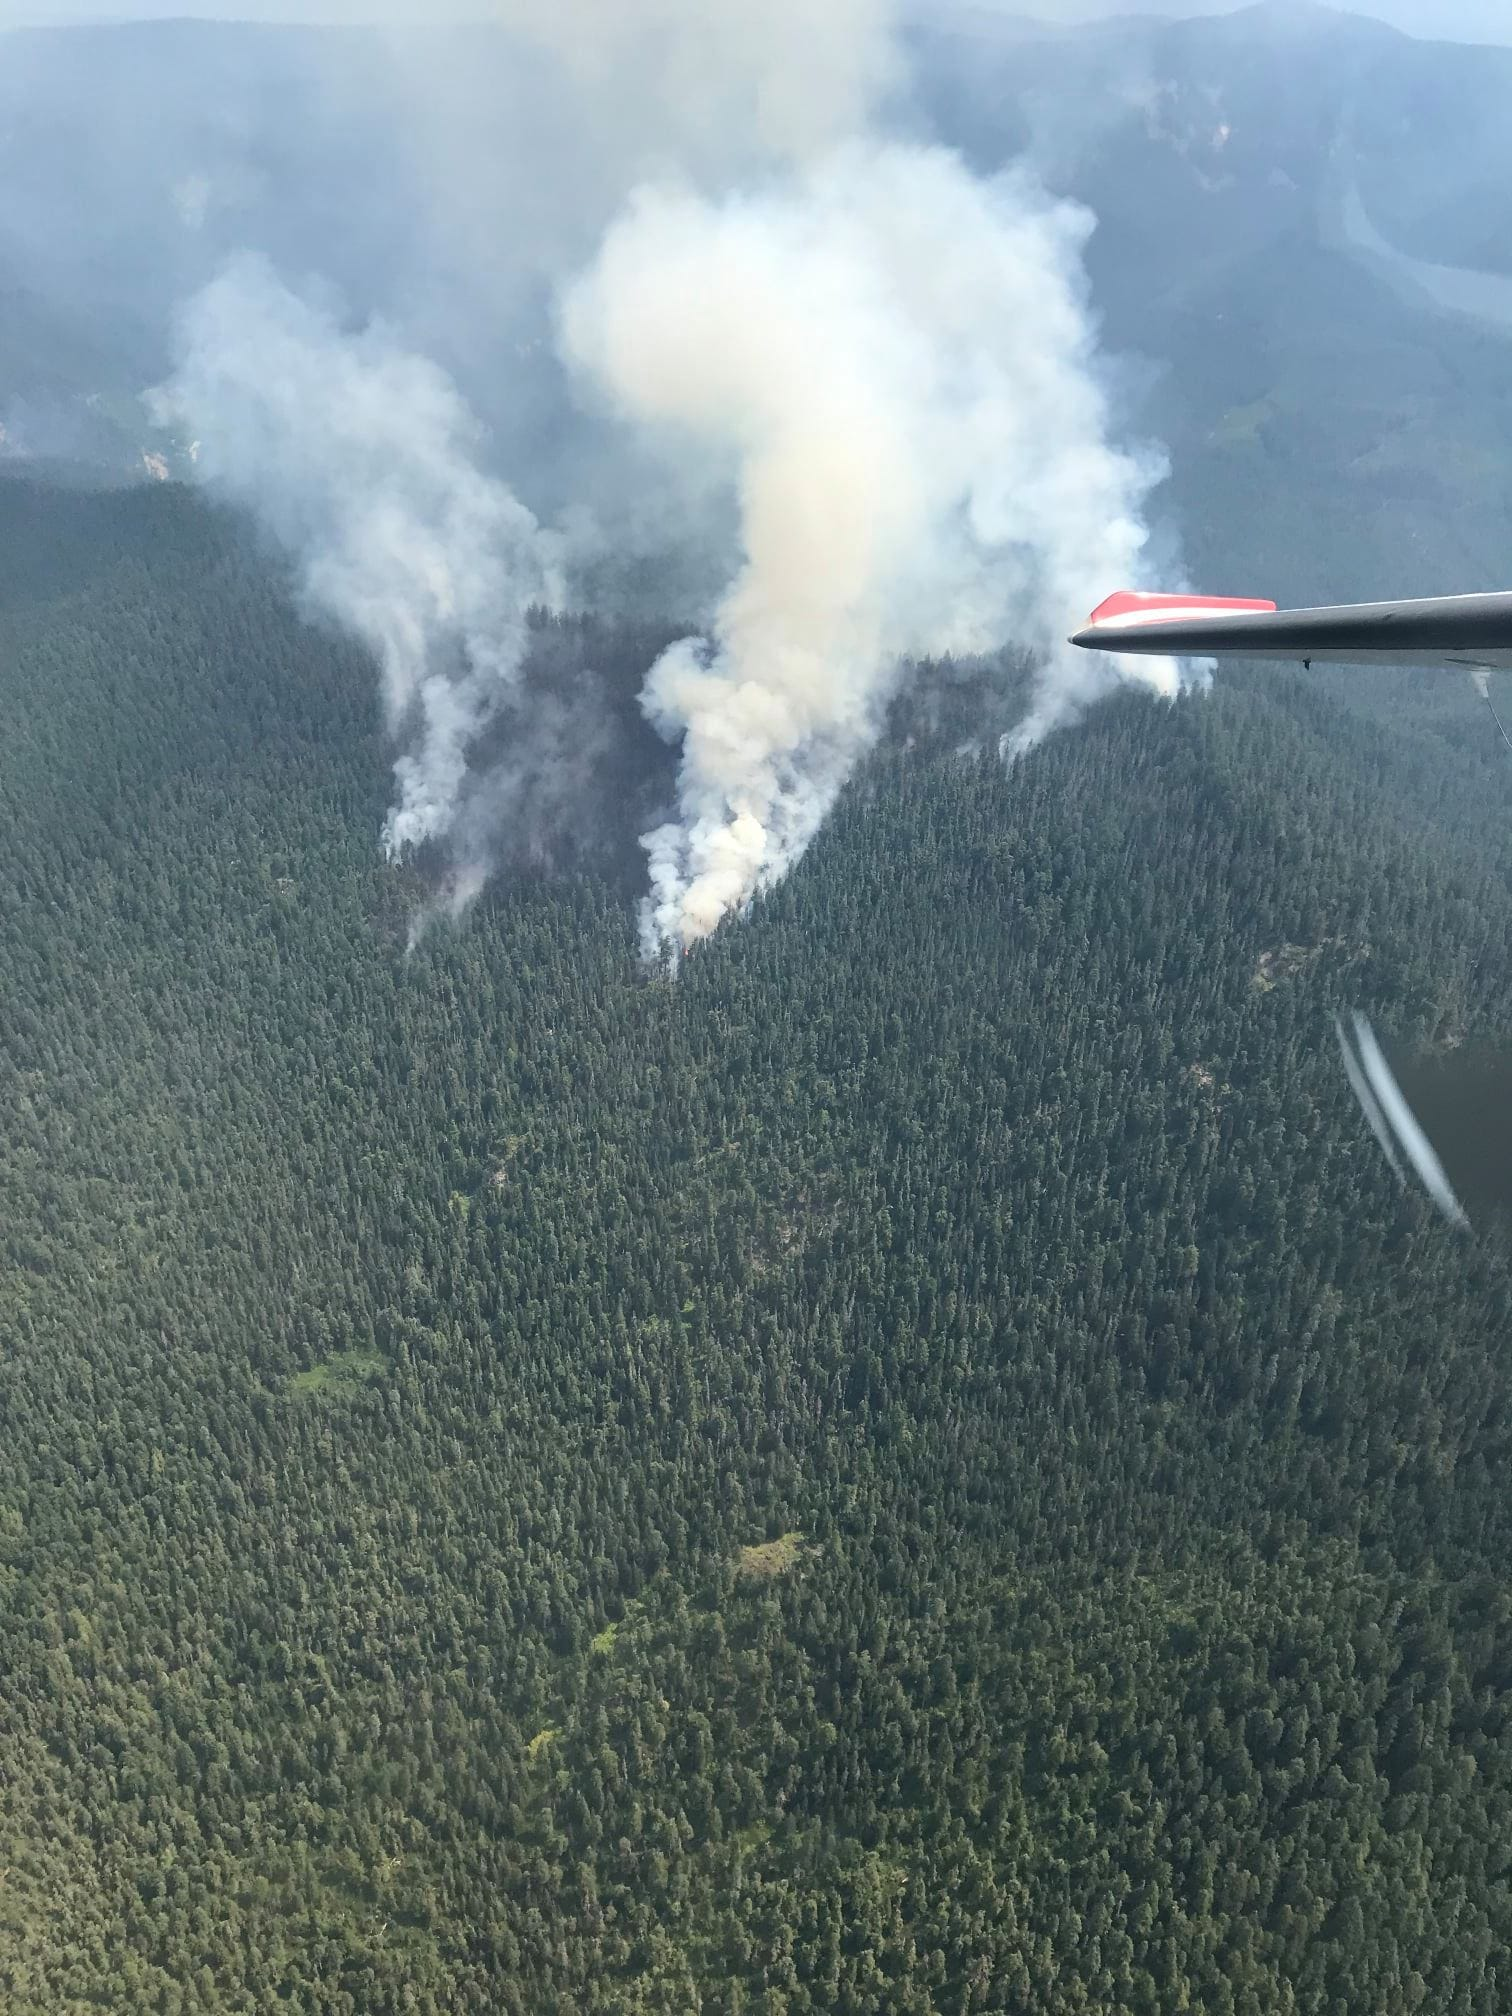 Oregon wildfires: Five new fires in Bull of the Woods near Detroit, largest blaze grows to 300 acres